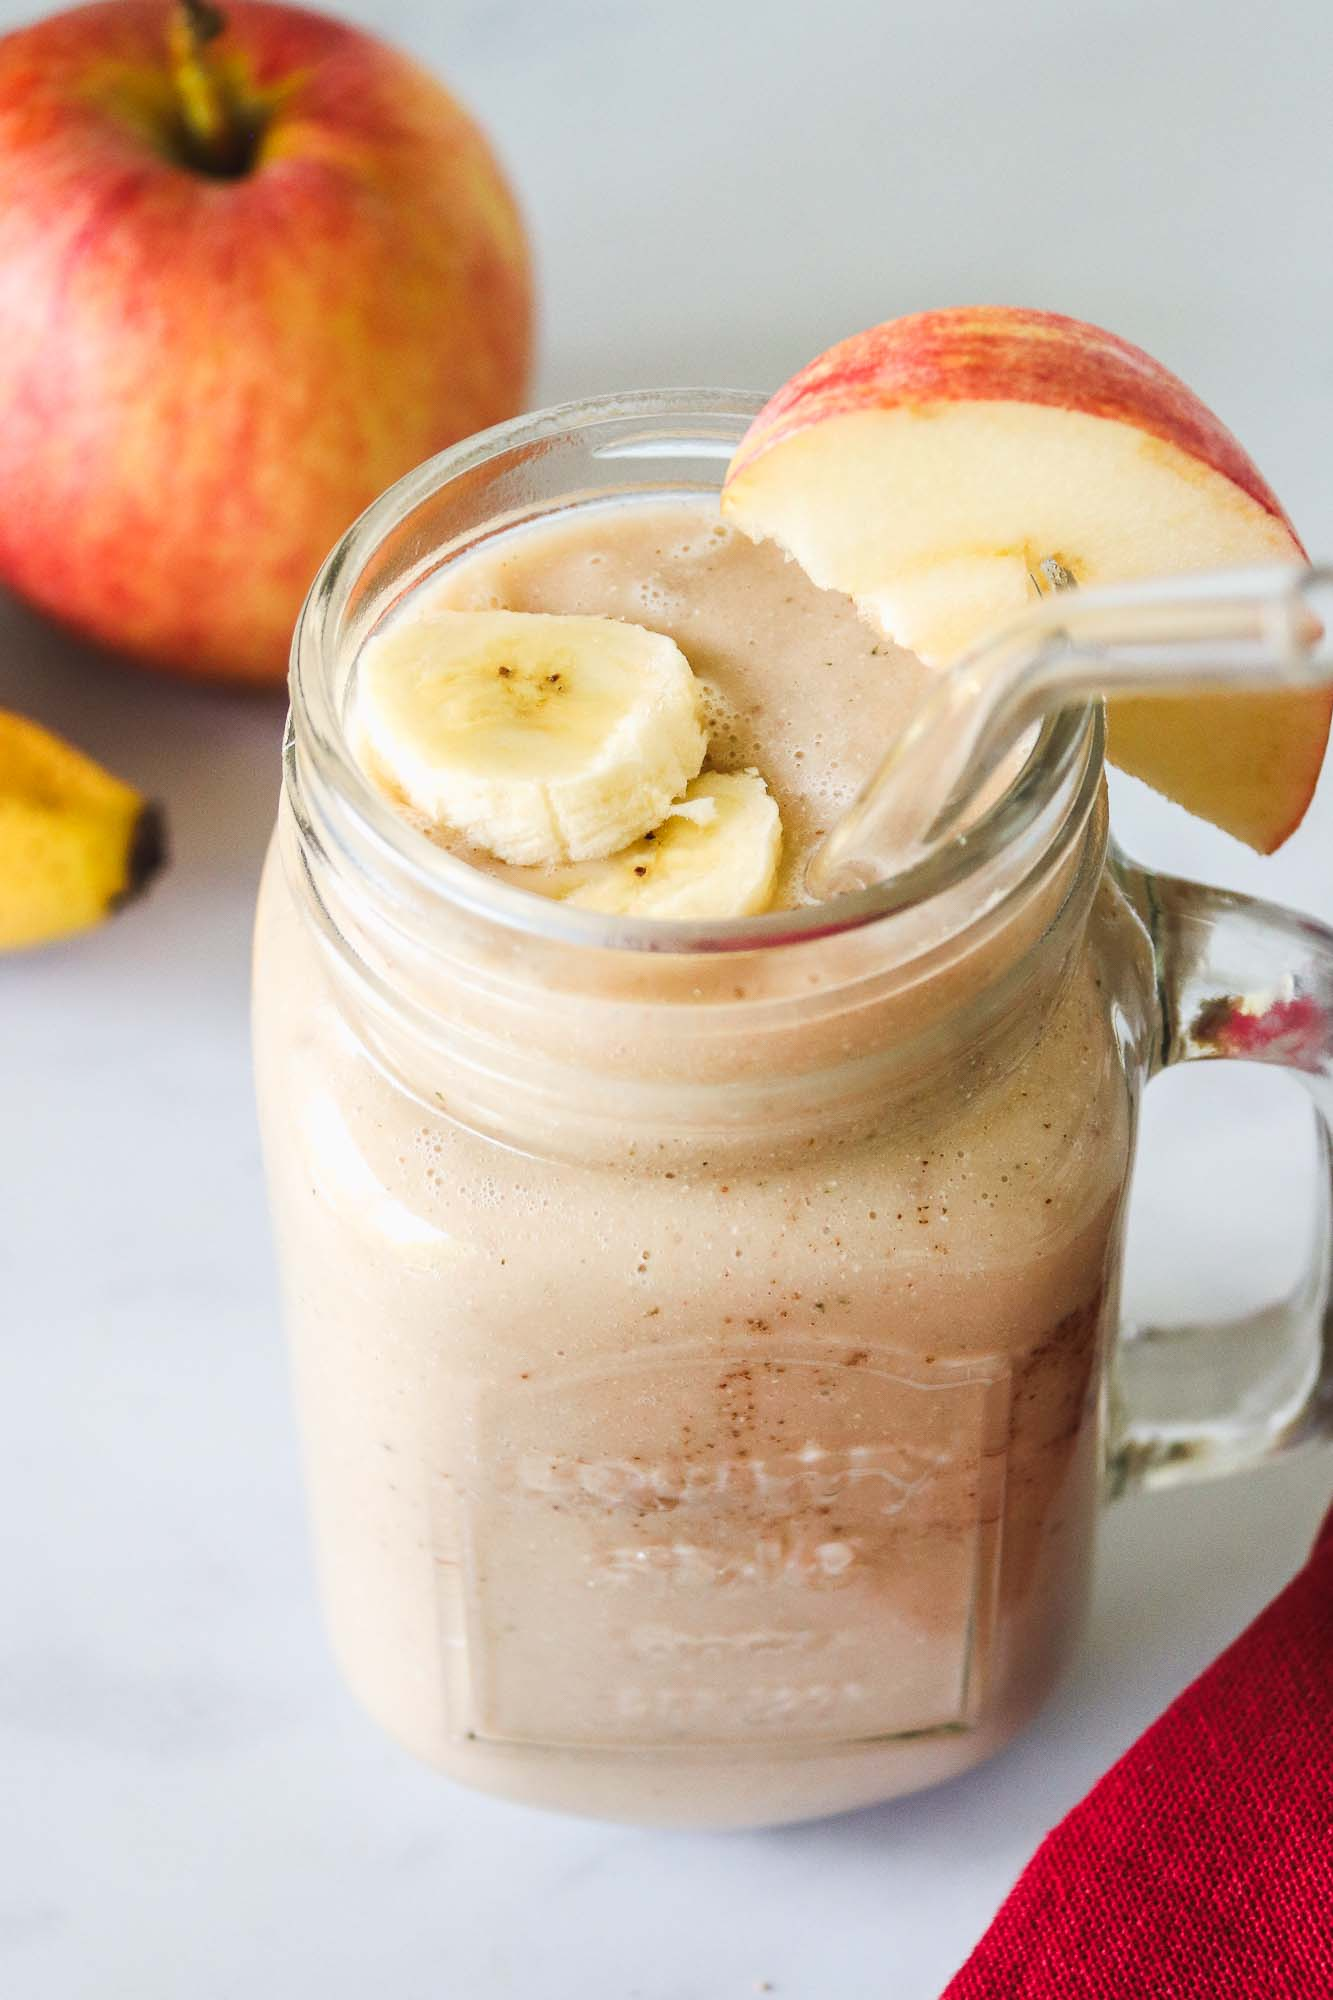 Apple Banana Smoothie served with apple and banana slices